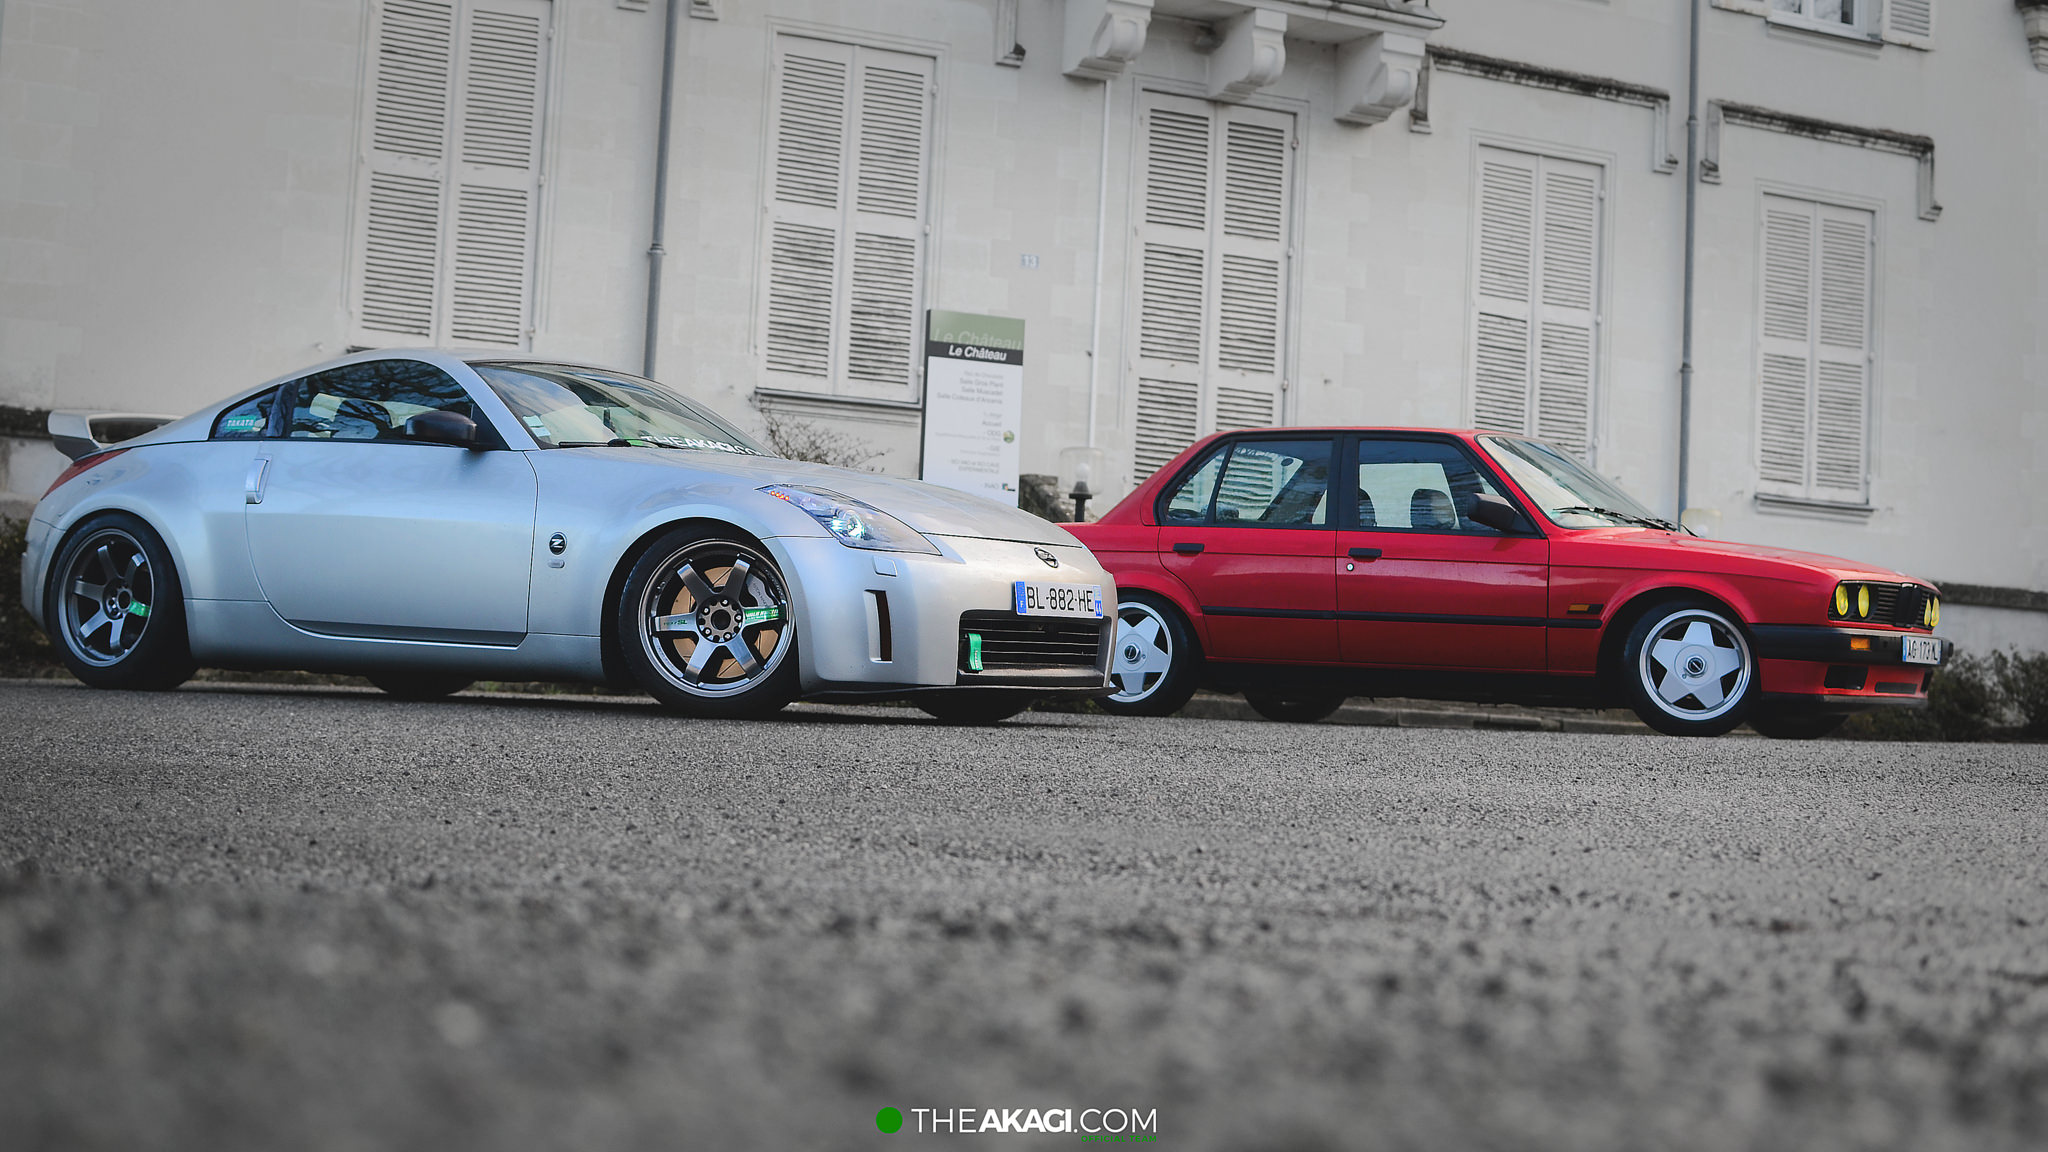 THEAKAGI | Nissan 350z & BMW E30